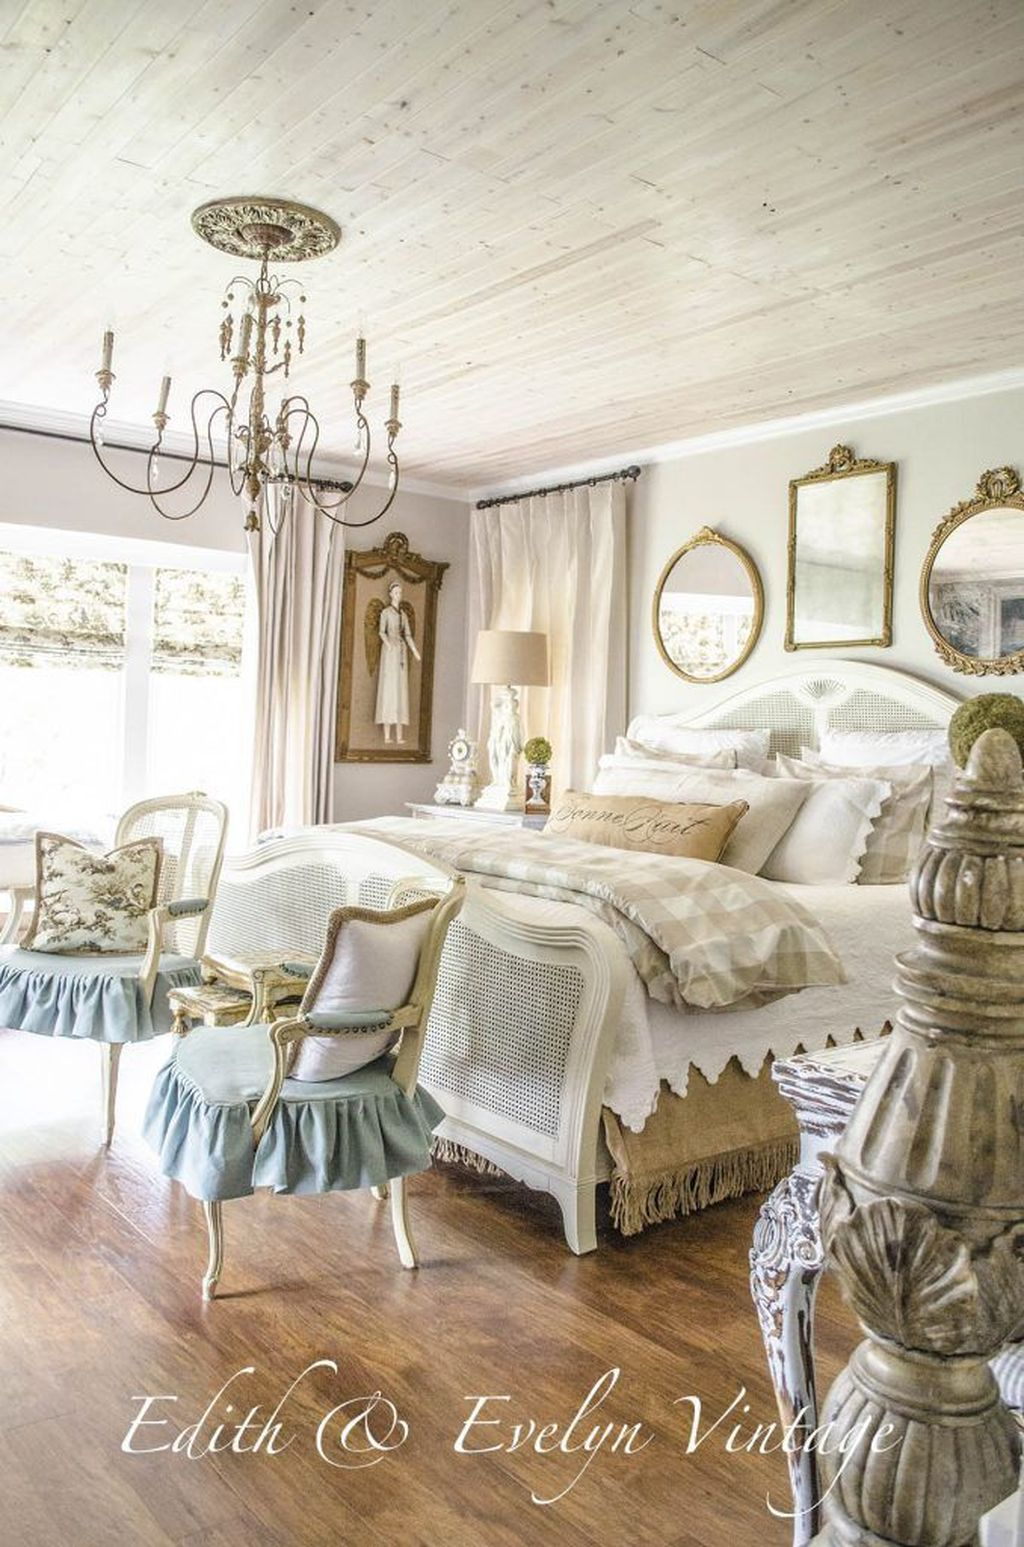 Cool French Country Master Bedroom Design Ideas With Farmhouse Style 06